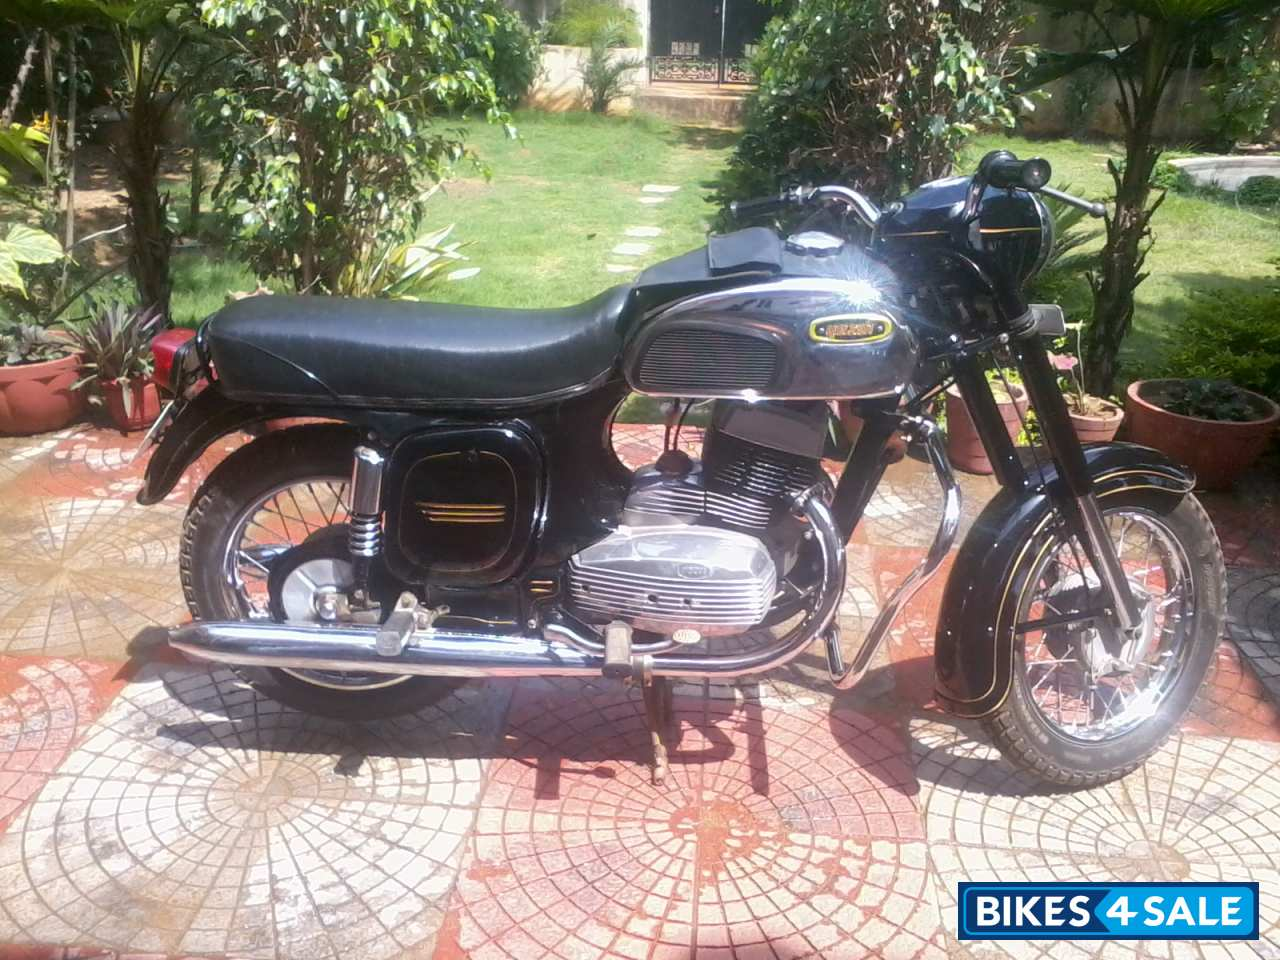 Second hand java in chennai contact me asap id is 64541 bikes4sale